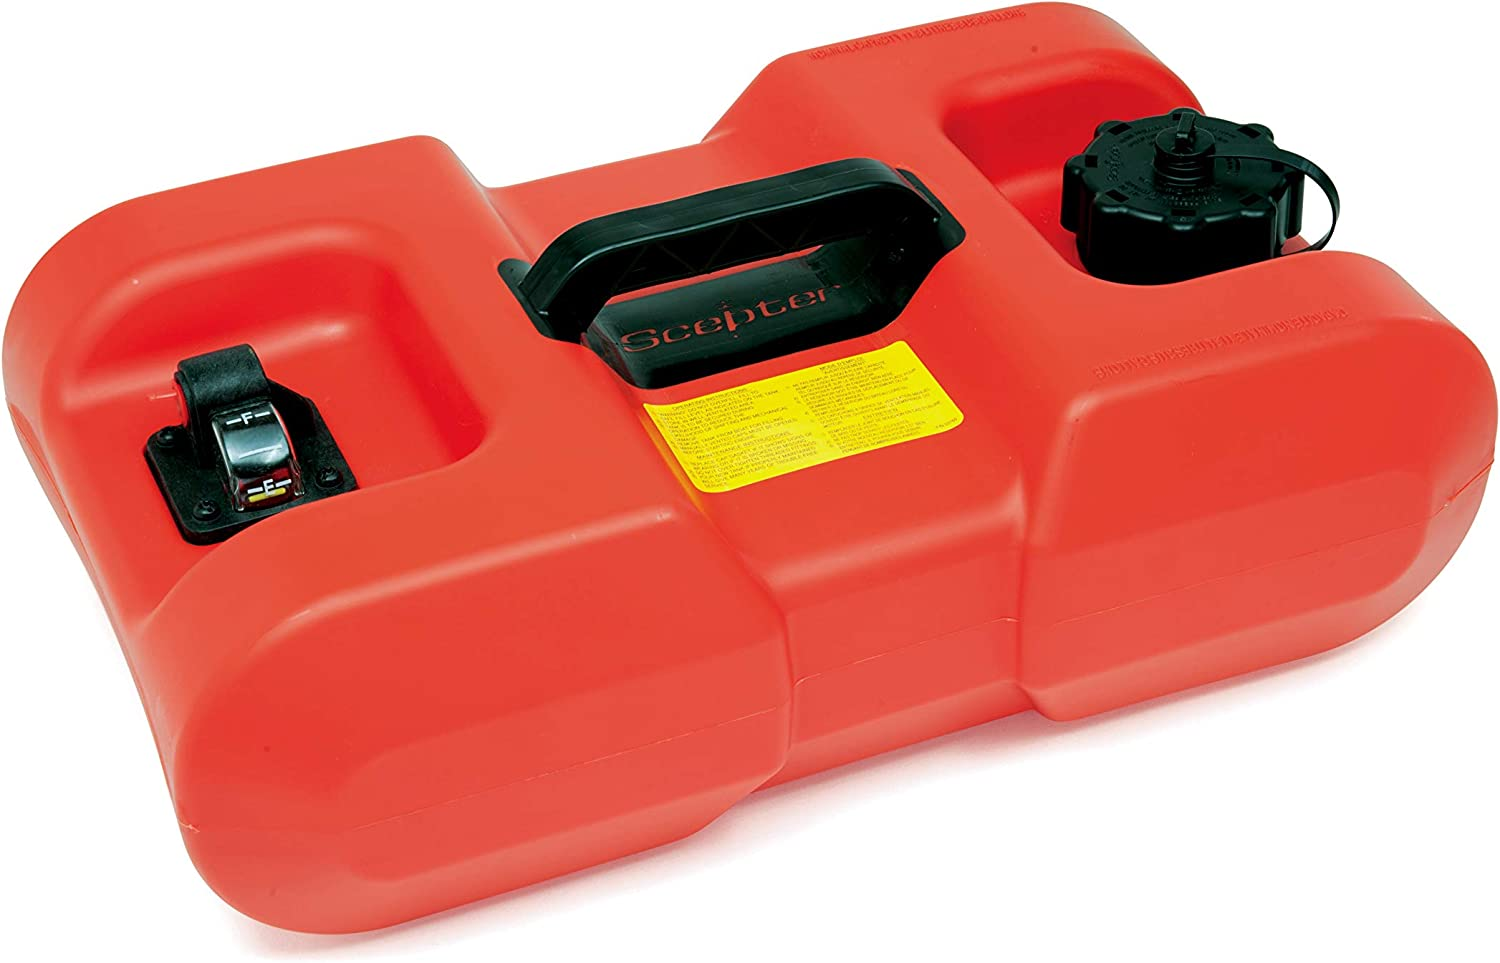 Scepter Under Seat Limited price Fuel Portable Tank safety